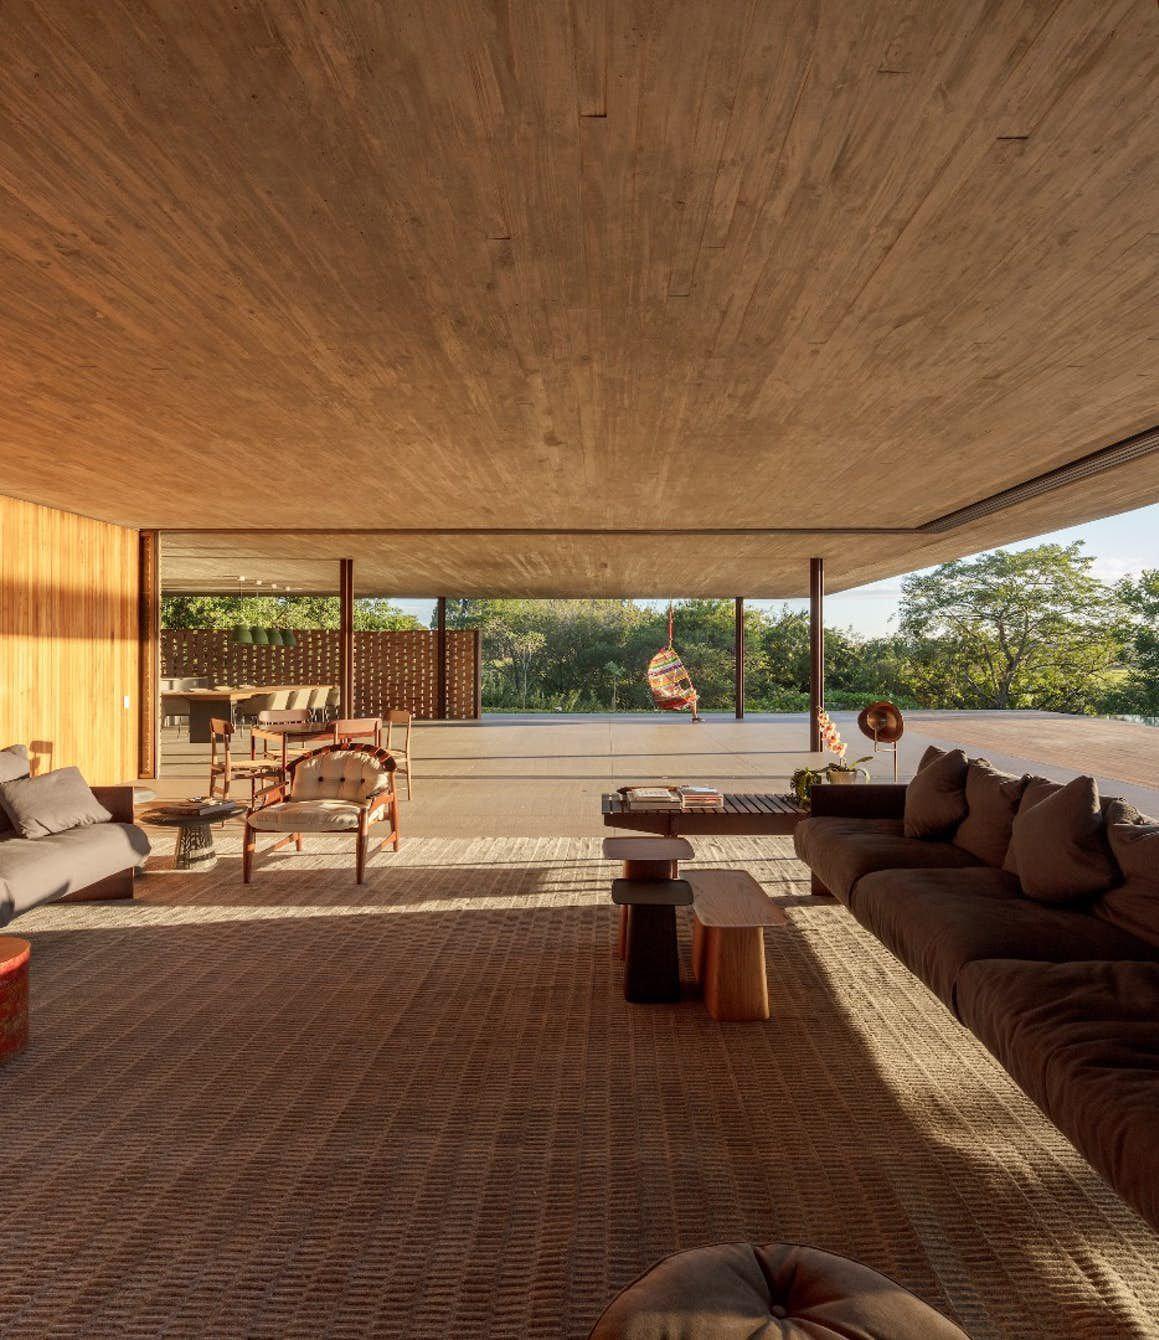 Interior shot of living room and terrace